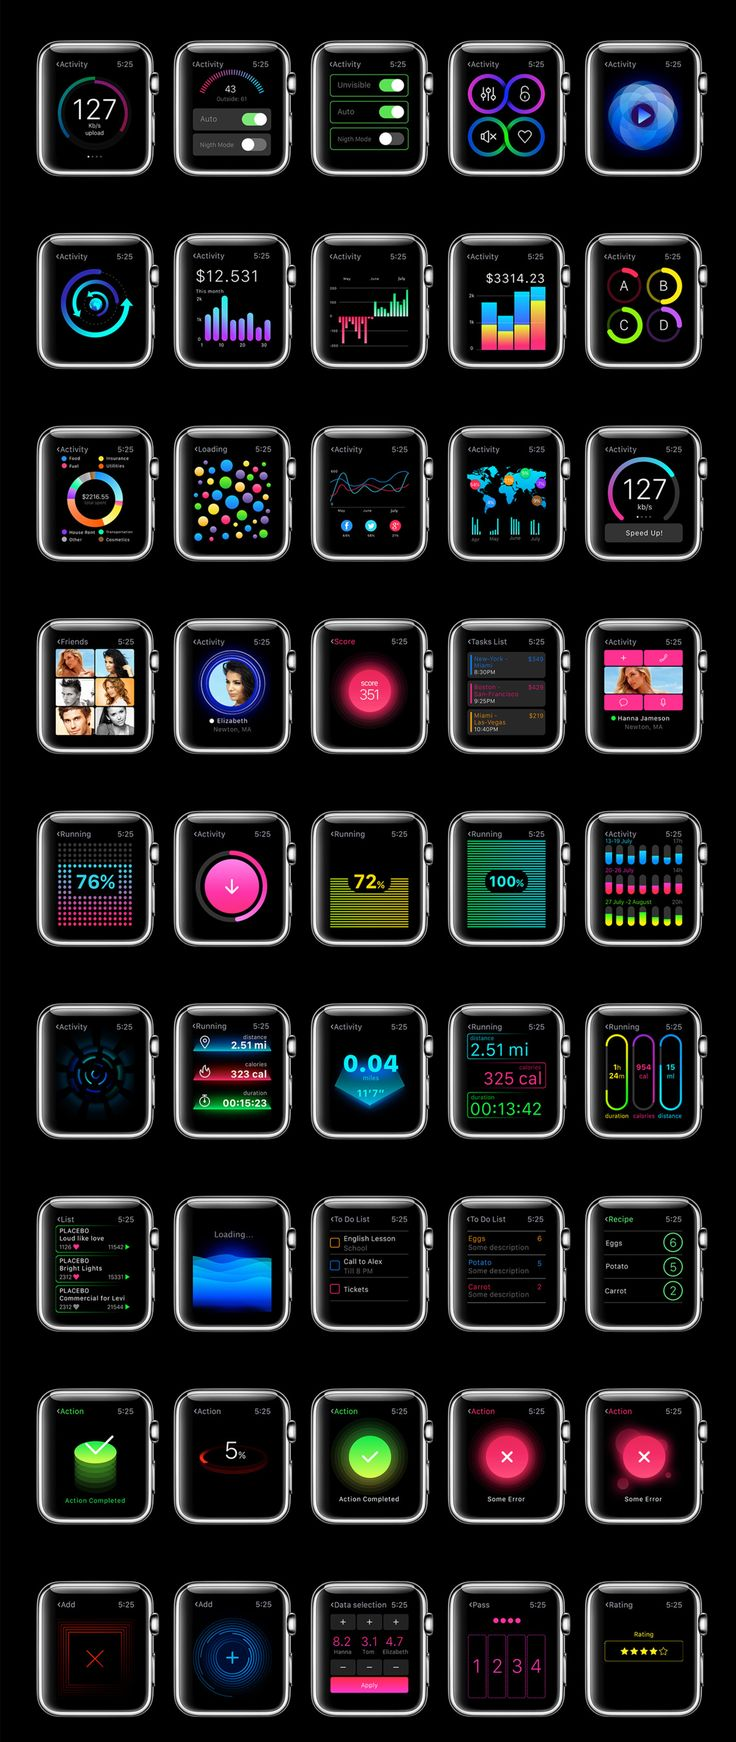 The biggest UI Kit for Apple Watch apps. W1 contains more than 200 screens that will meet any needs you may have in your designing process. Each screen is fully customizable, exceptionally easy to use and carefully assembled in Sketch, which makes it easy to export. W1 UI Kit is the best way for you to design your custom app for Apple Watch.